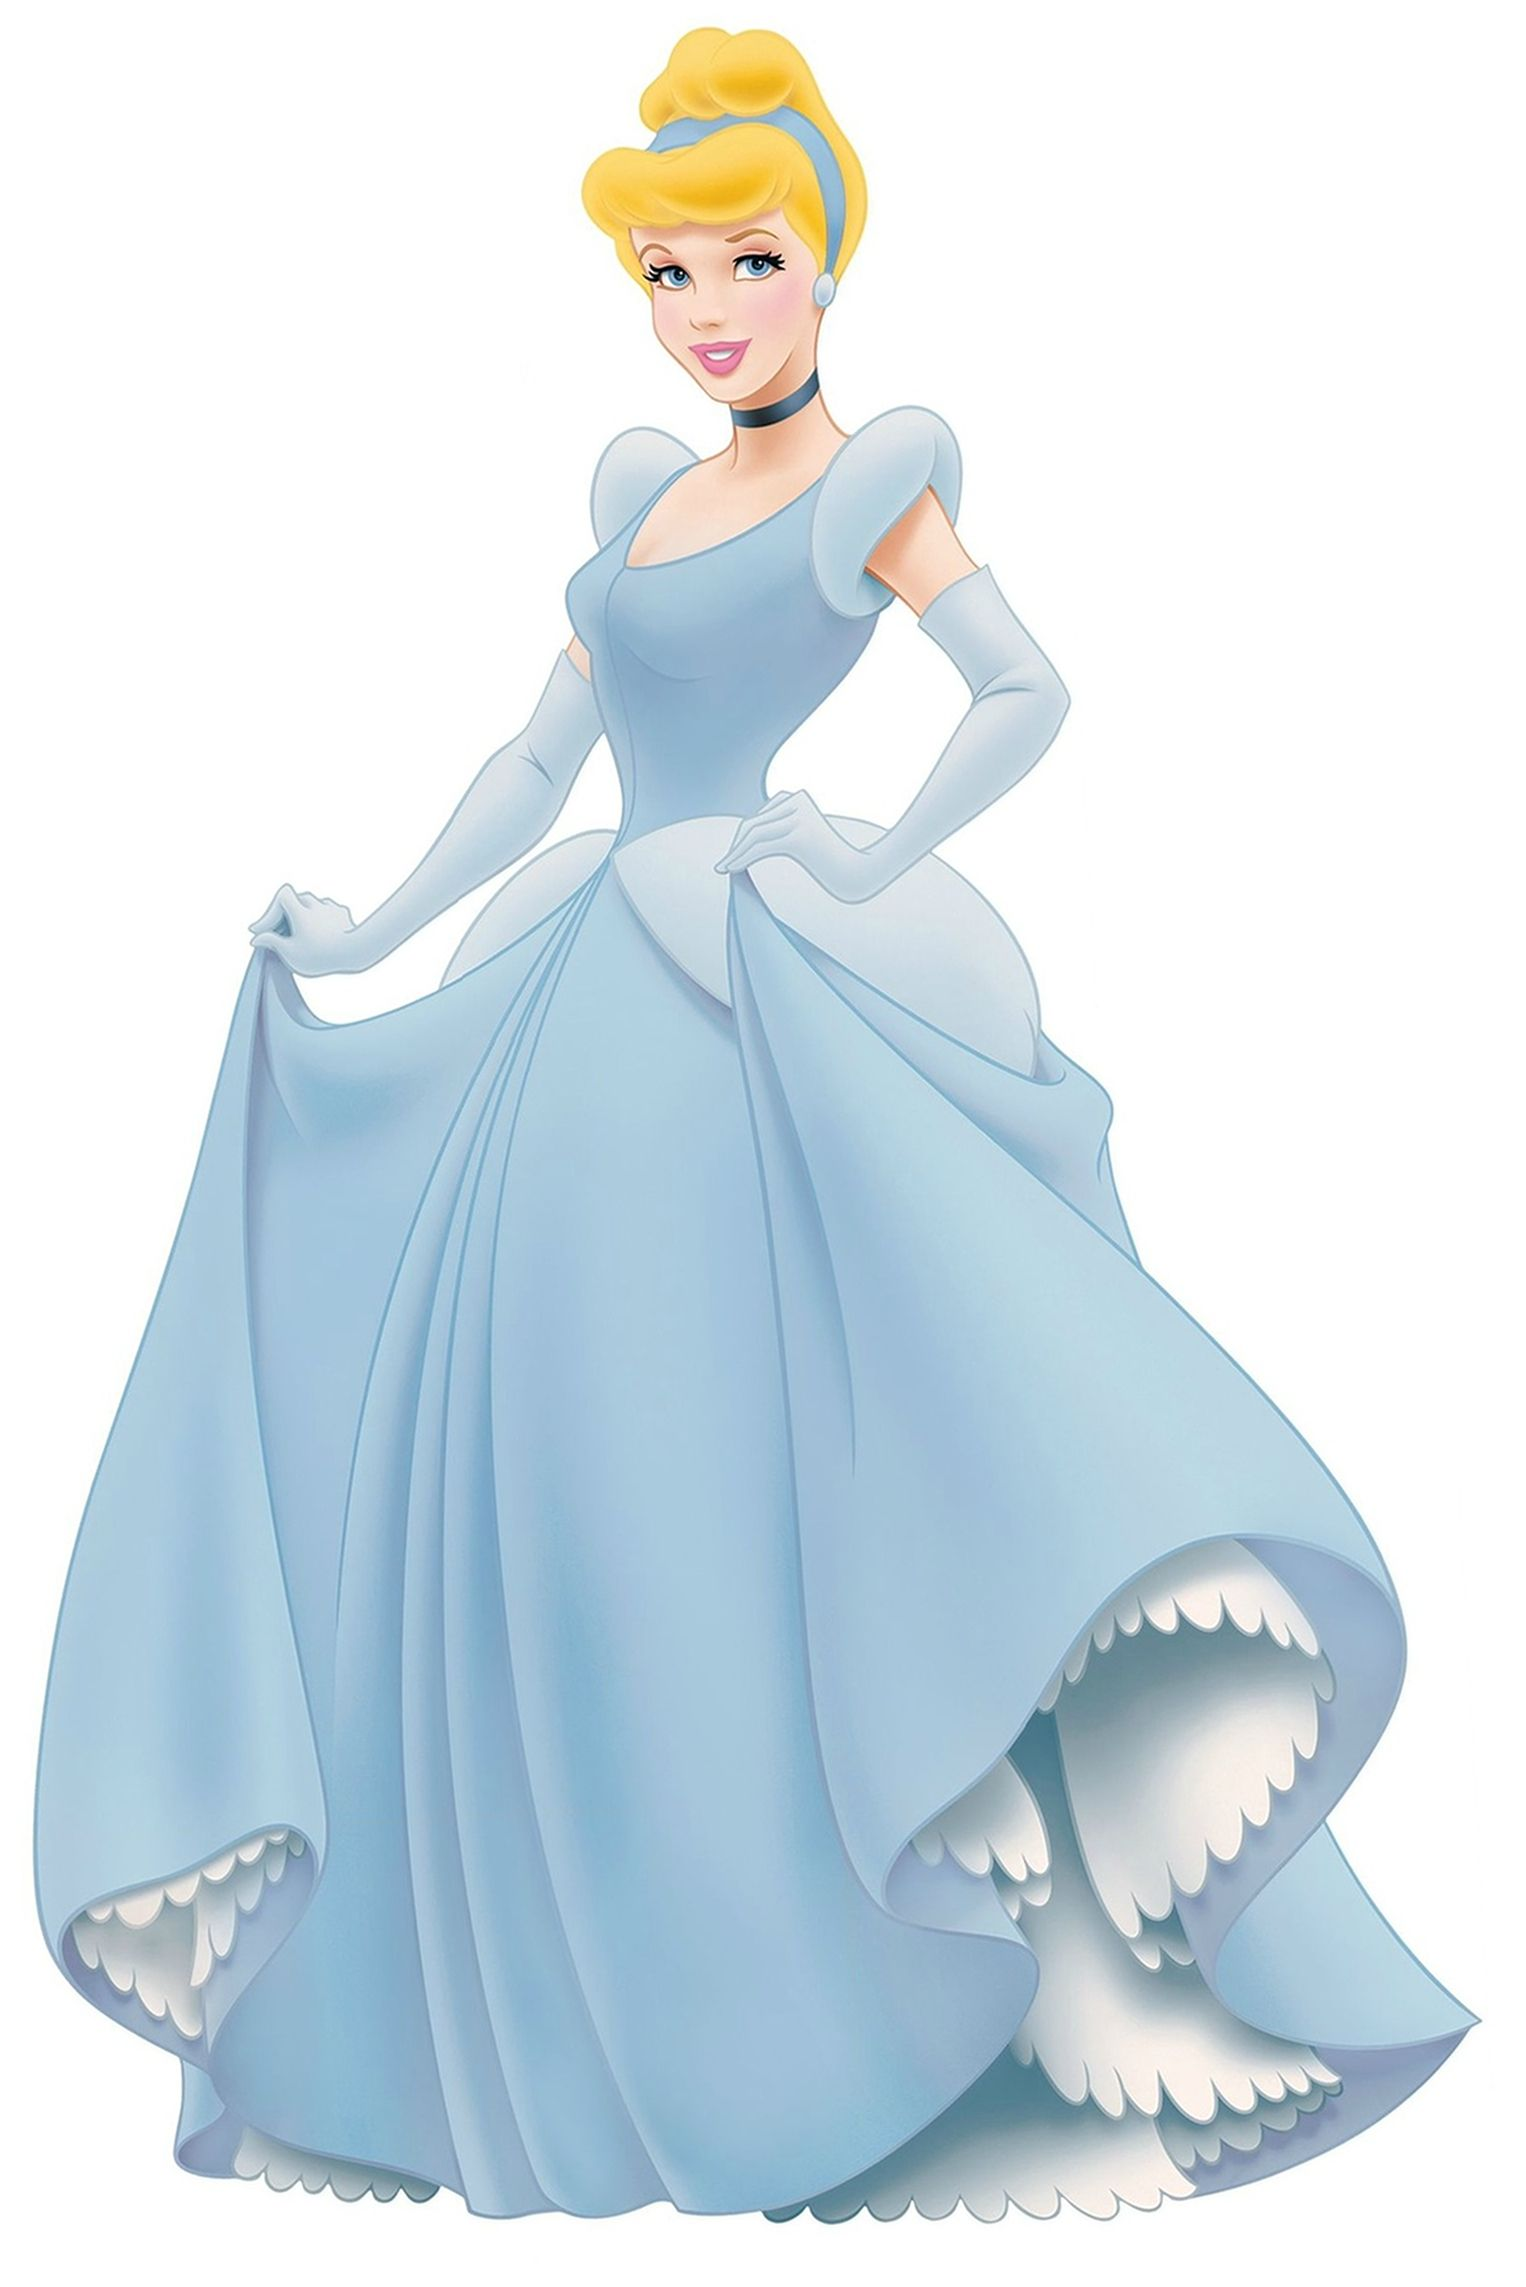 Cinderella (character) | Disney, Cinderella gowns and Gowns